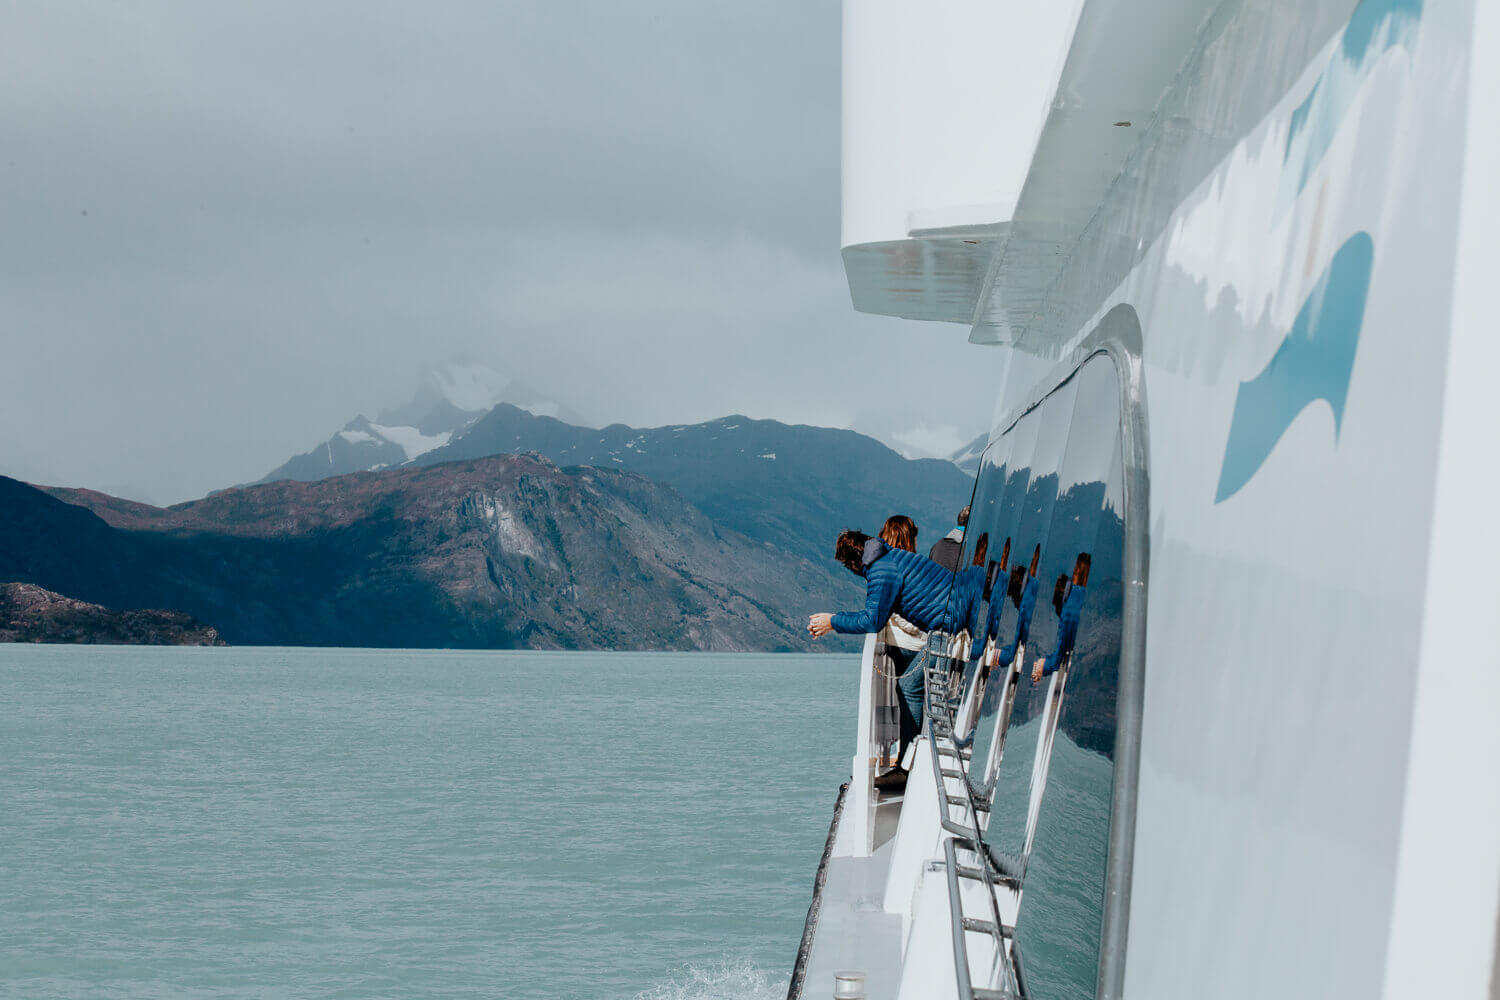 A man in a blue coat leans against the rail of a catamaran watching the mountains in the distance.